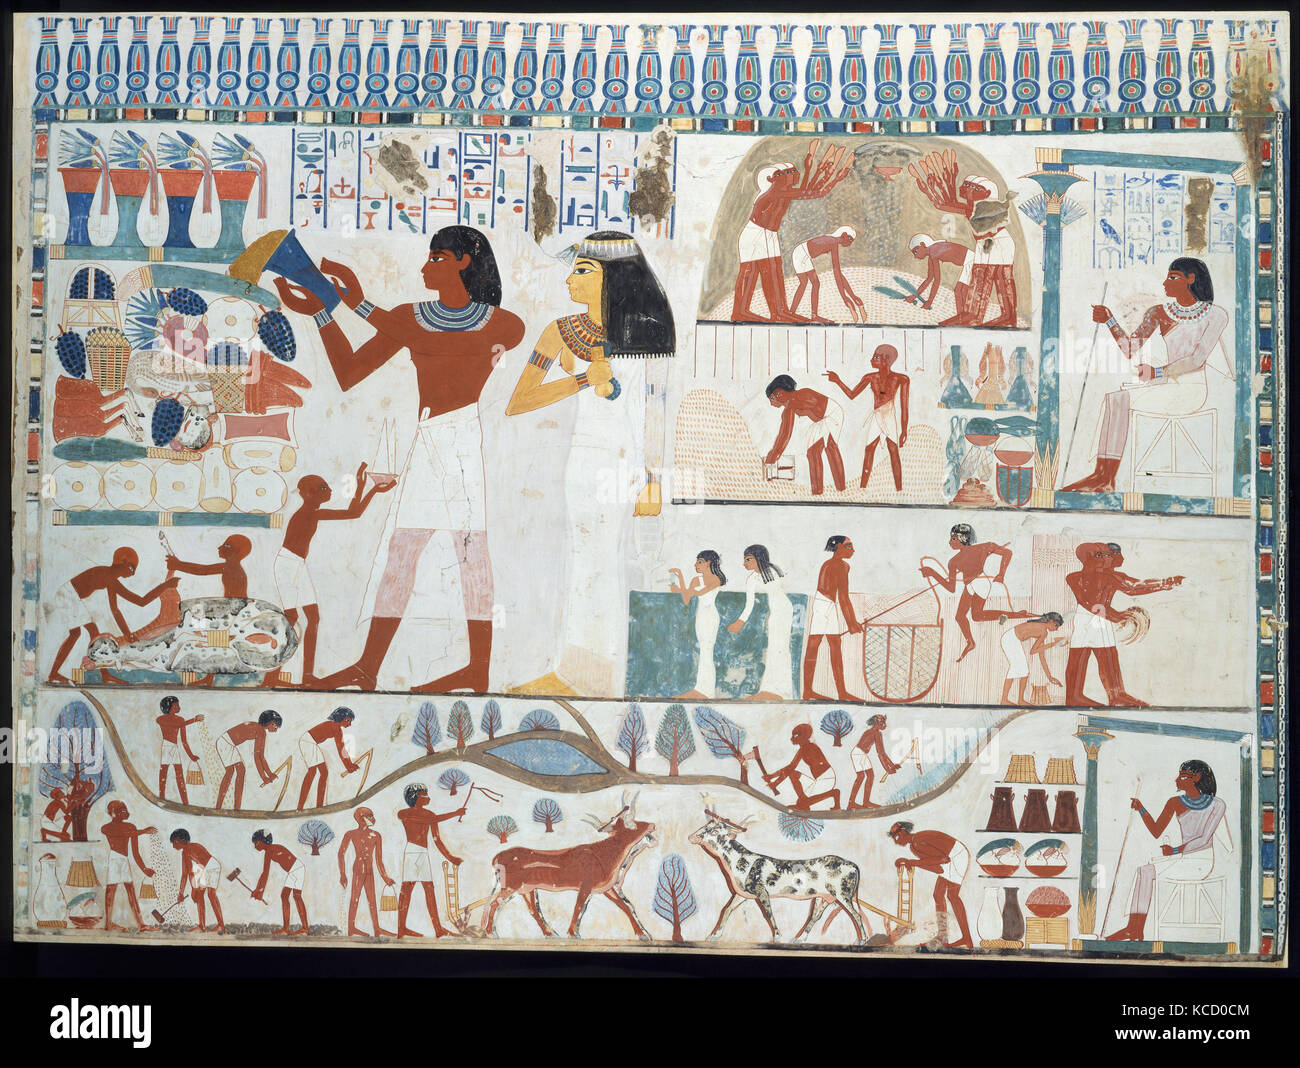 Tomb of nakht stock photos tomb of nakht stock images for Egyptian mural art